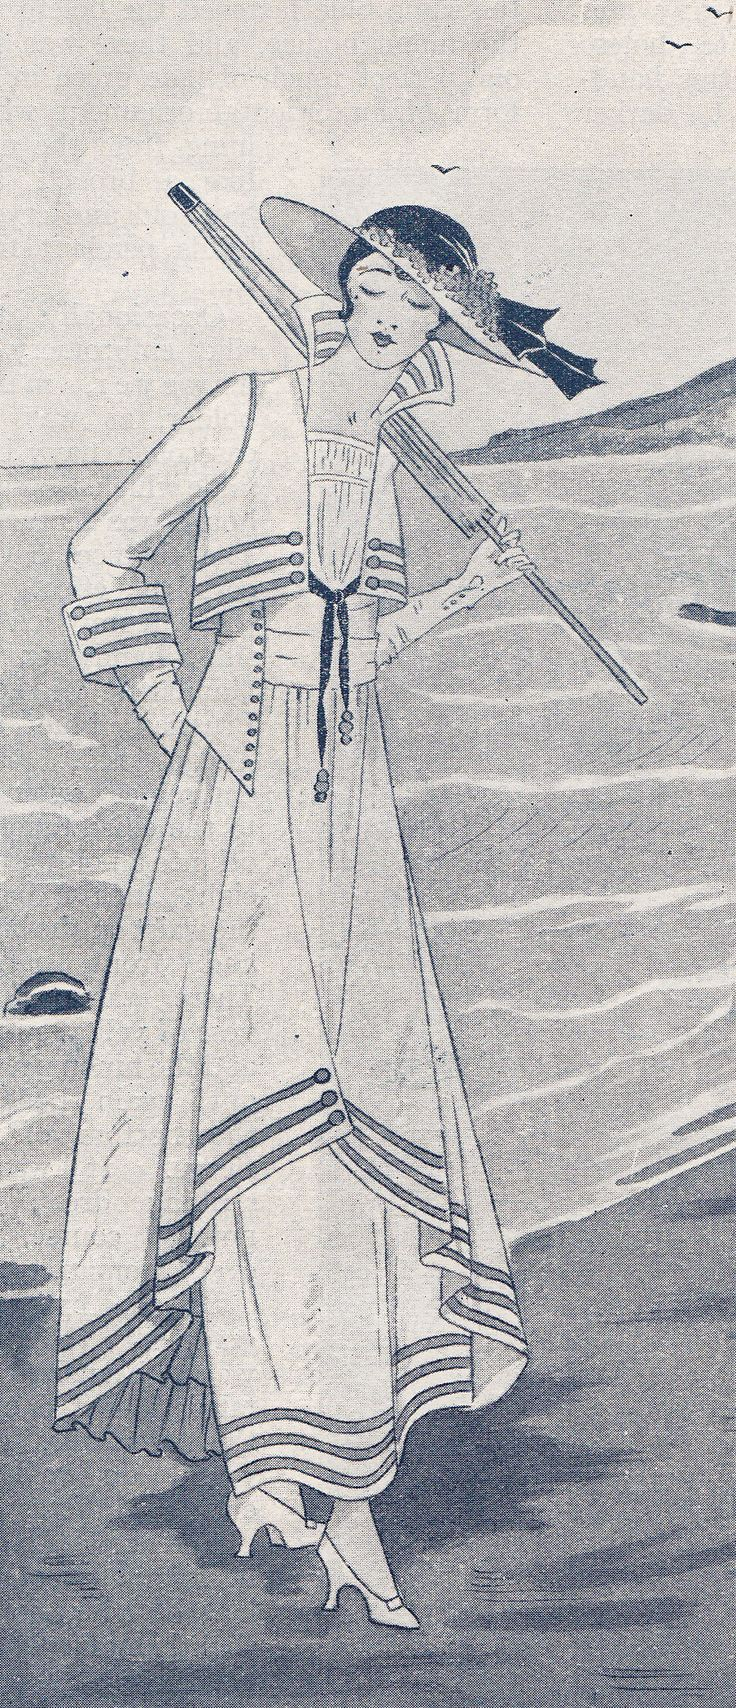 Costume Inspiration WW1 summer outfit, Paris Journal 1915-16, from the History Wardrobe collection